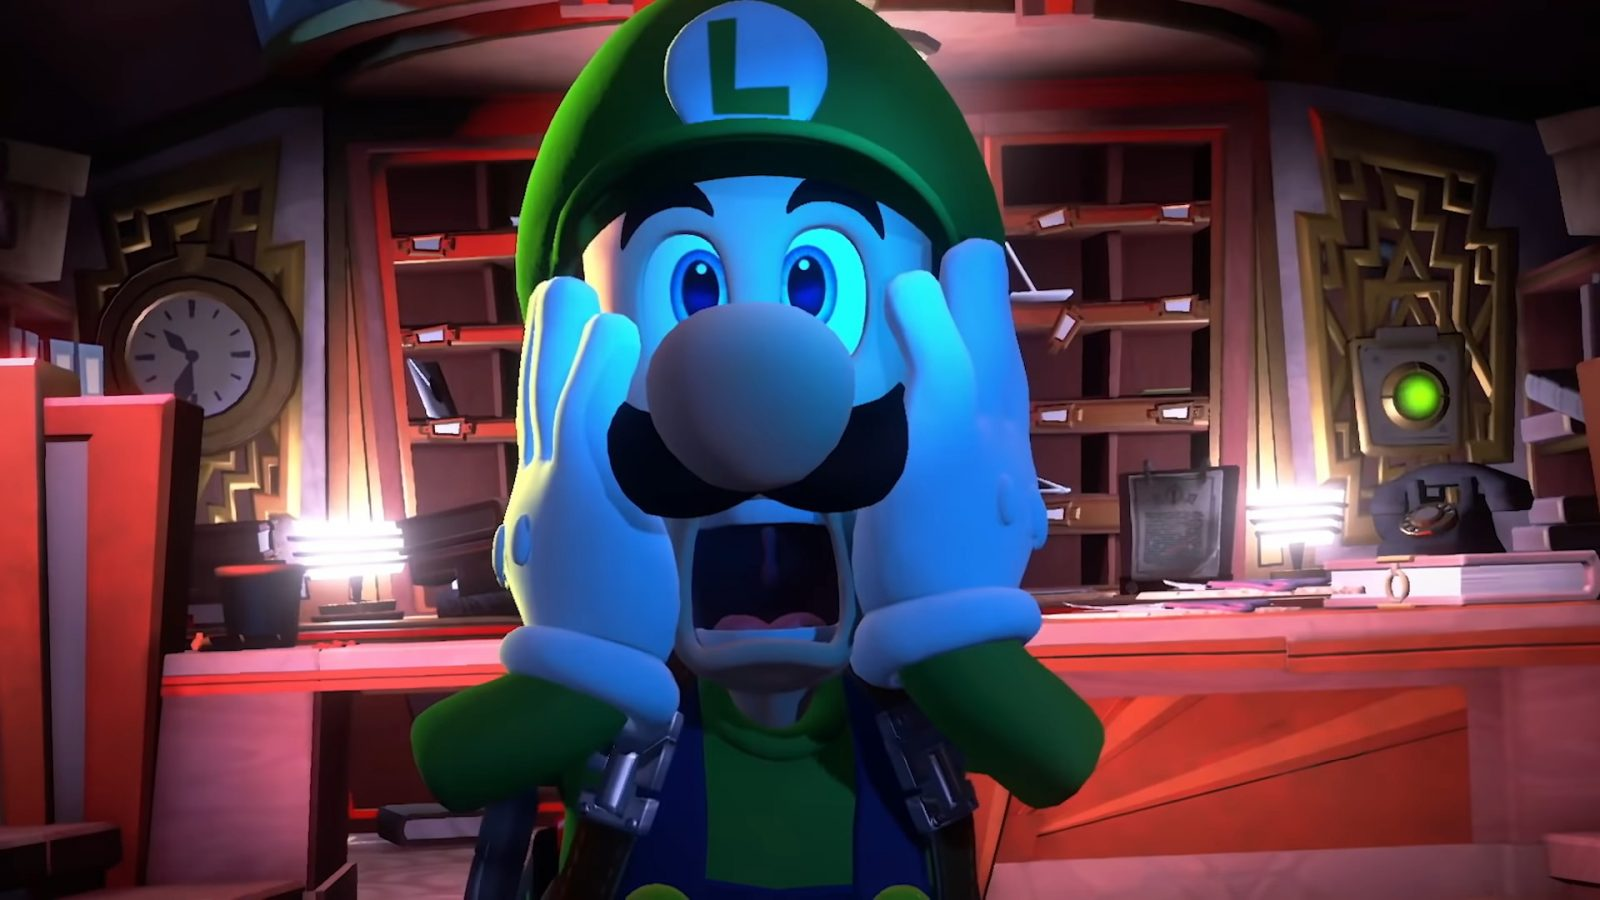 Luigi's Mansion 3 Will Launch On October 4th According To Amazon Mexico